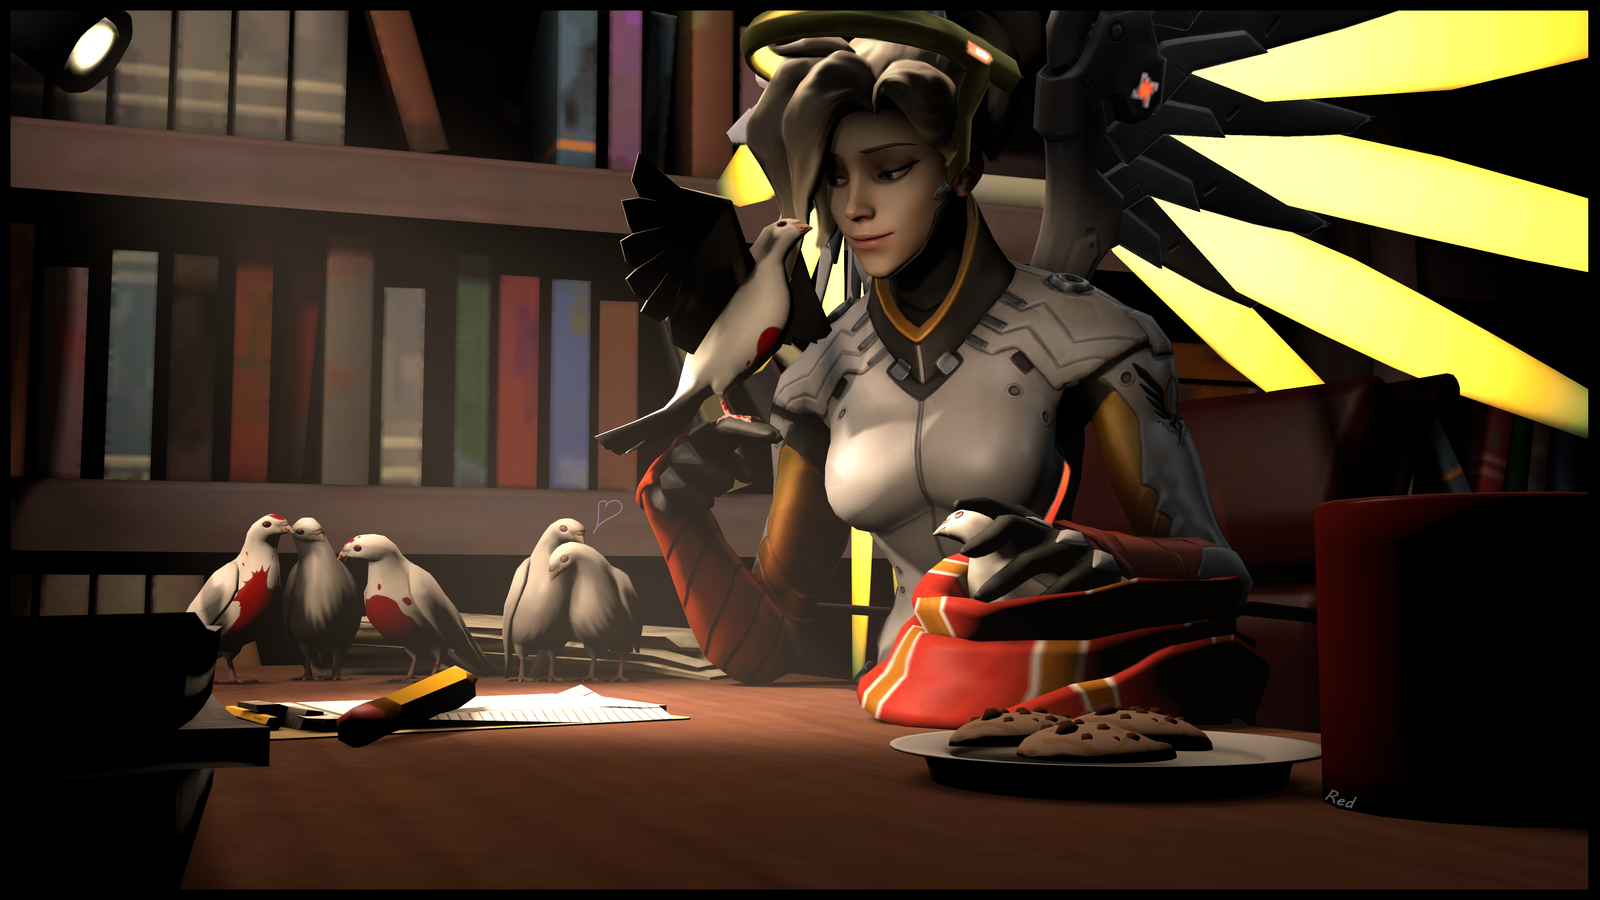 [SFM]Mercy with Archimedeses by ScAnnReD